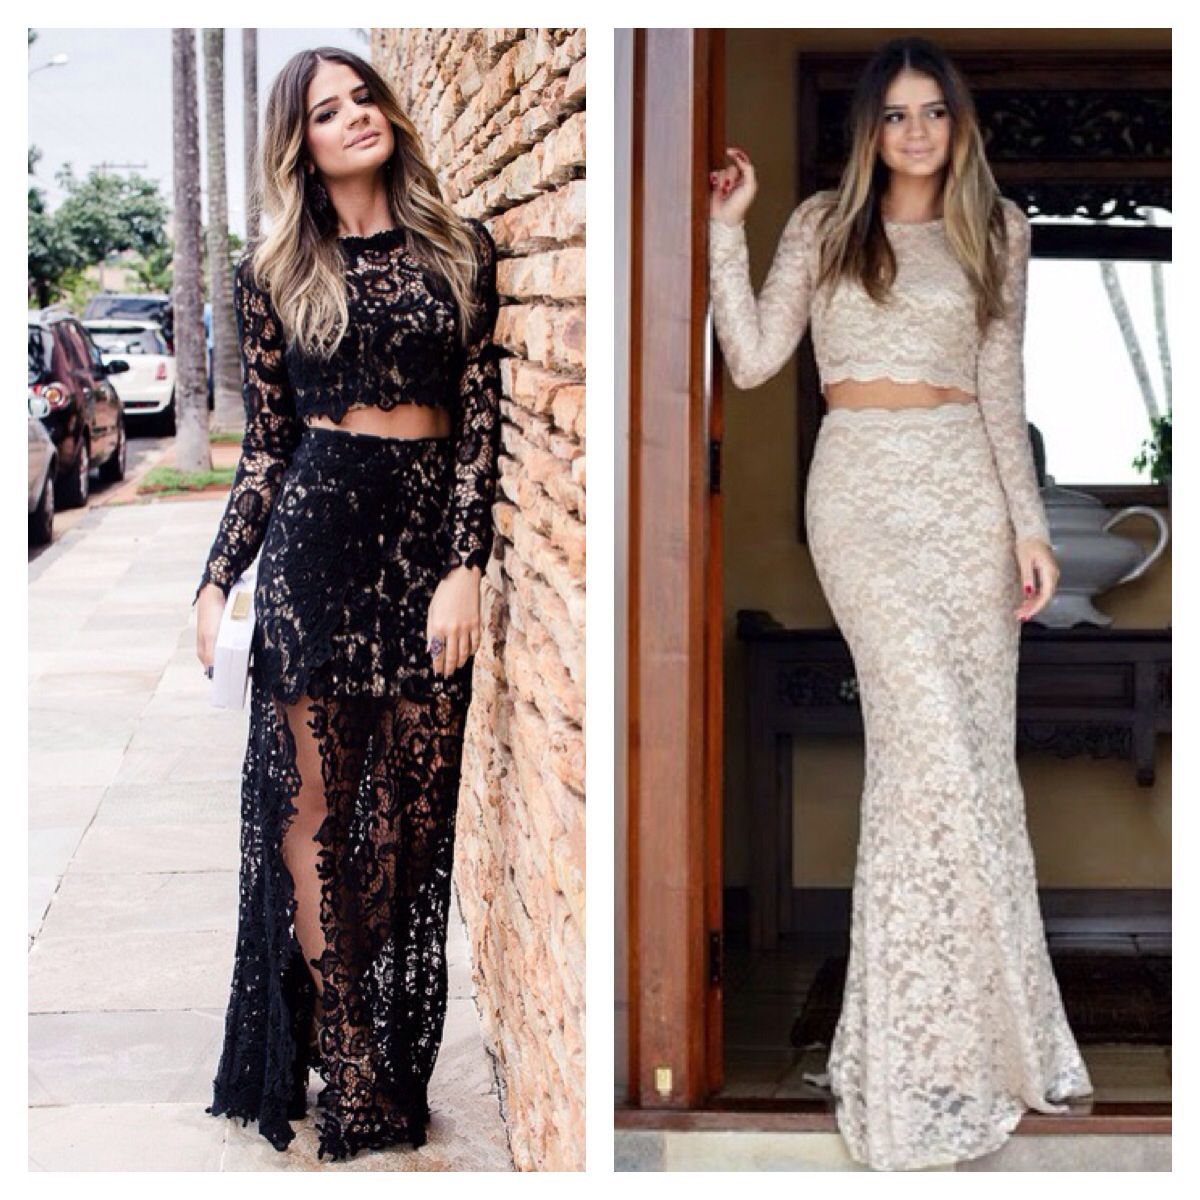 Thassia Naves - matching lace long-sleeved crop tops and maxi skirts for an  elegant evening outfit b7c553ec7142